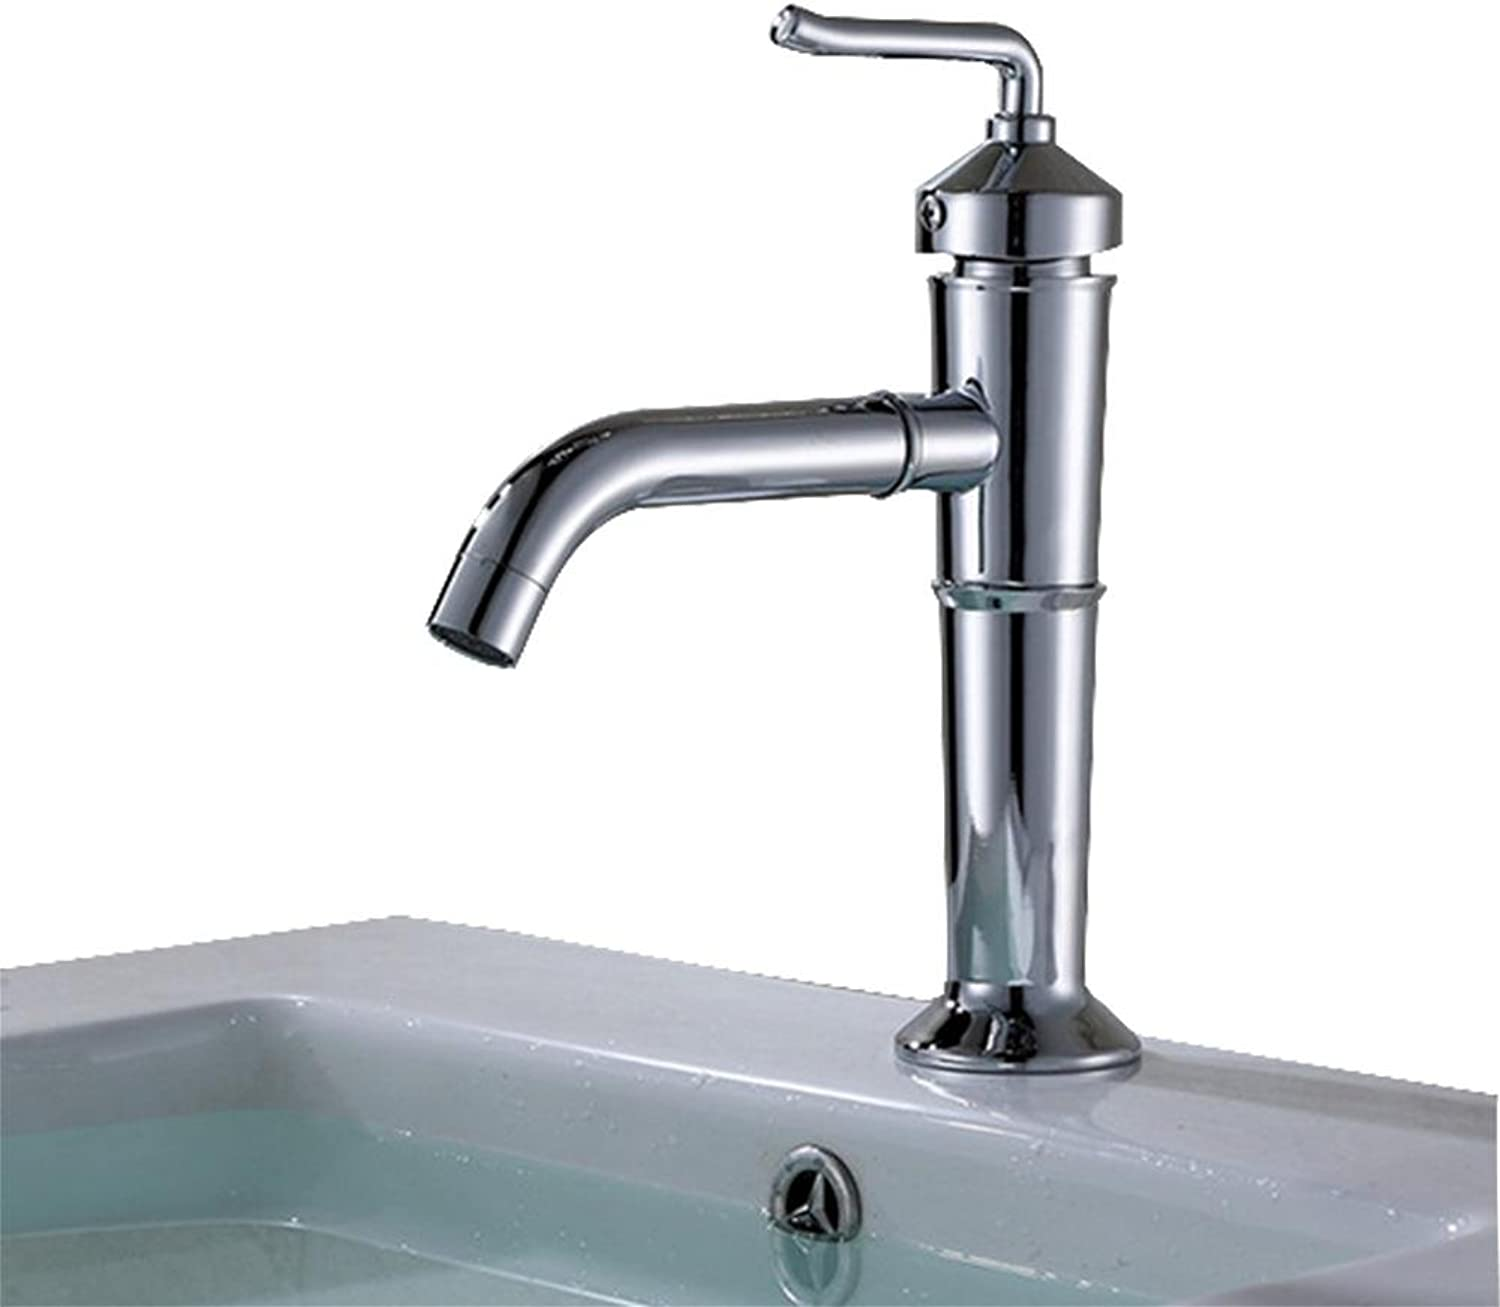 Retro Fashion Stainless Steel Single Hole Bathroom Basin Faucet Hot and Cold Mixed Water Faucet , silver